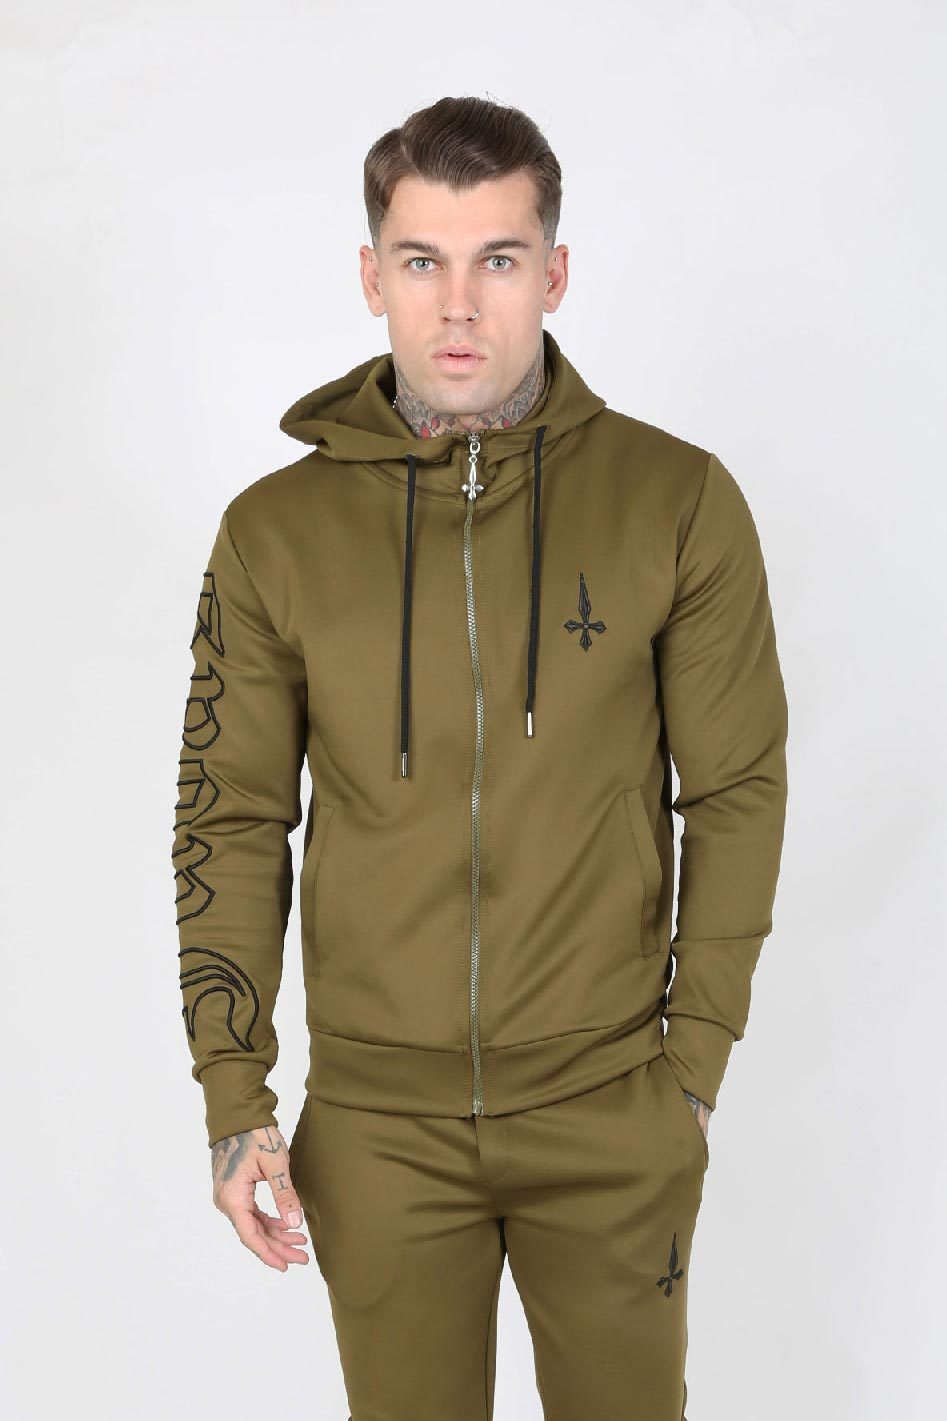 Outline Embroidery Scuba Zip Men's Hoodie - Khaki - Judas Sinned Clothing